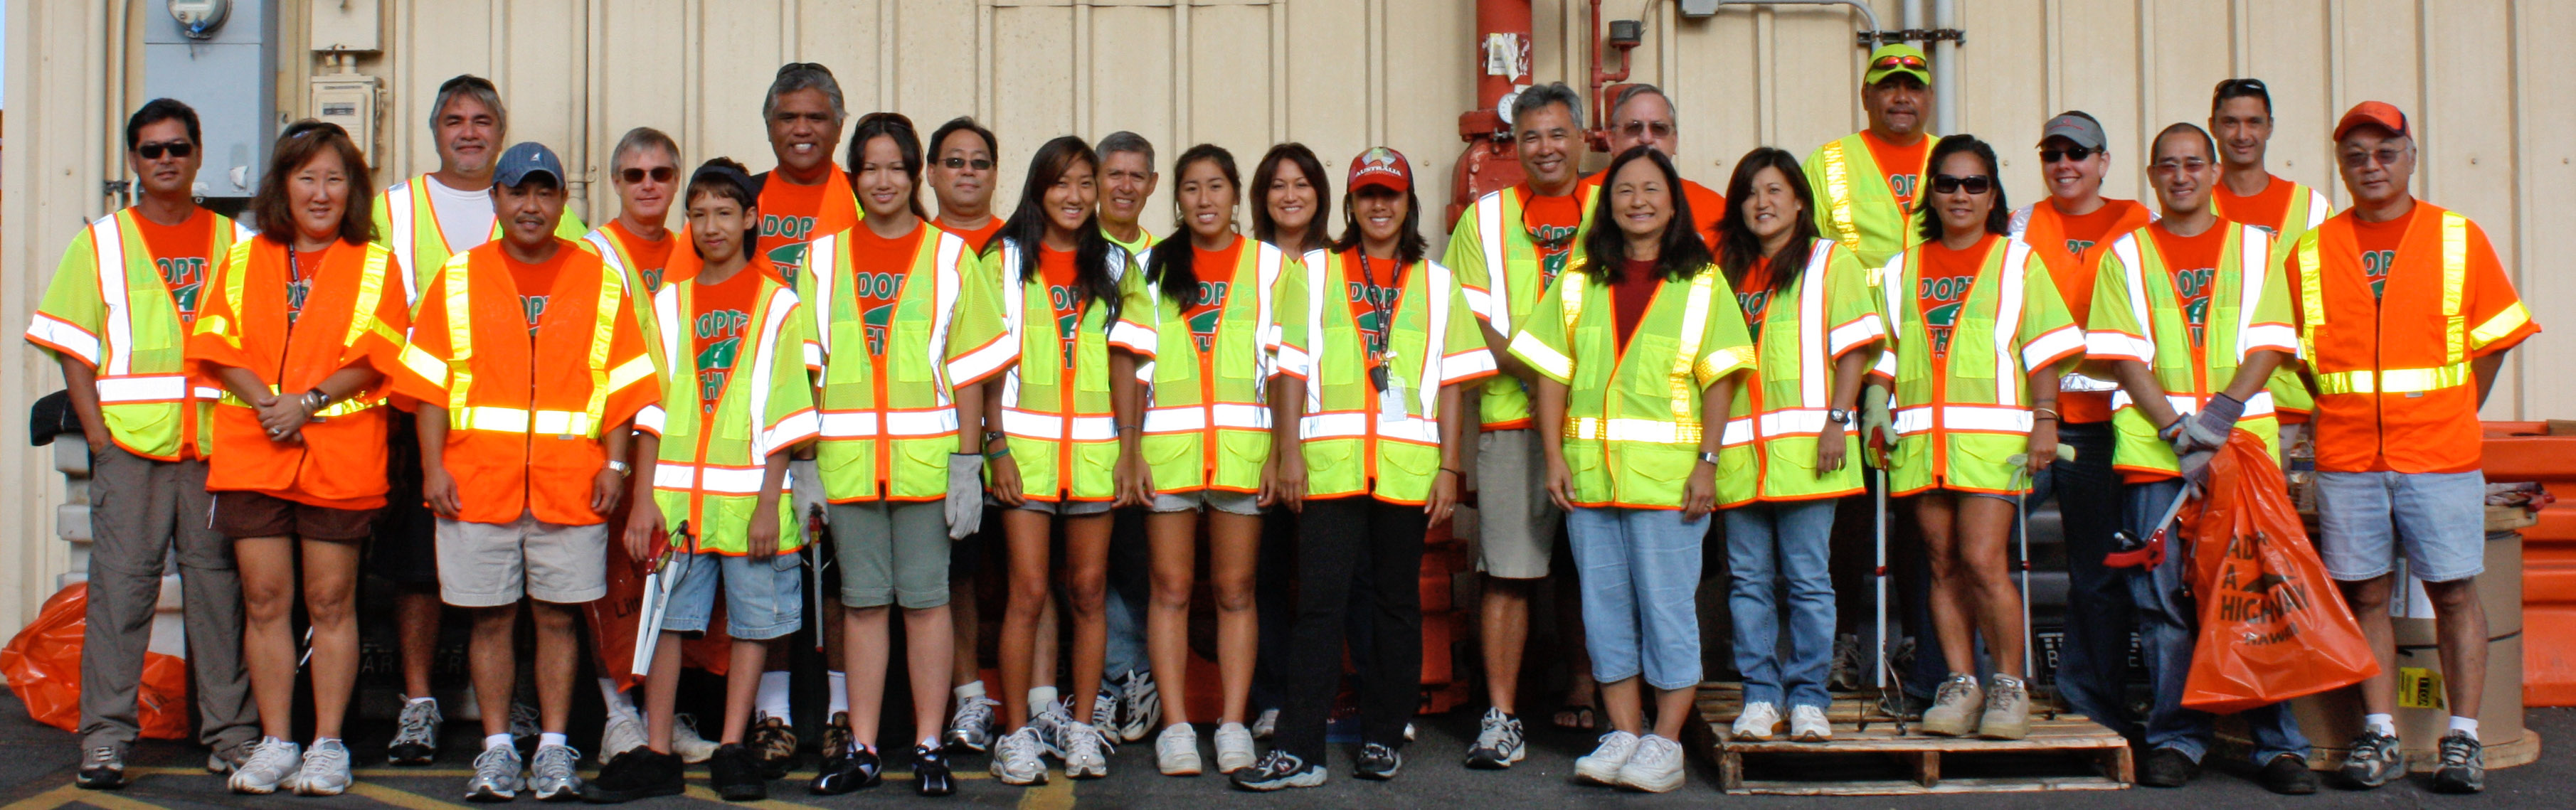 As part of the Adopt-A-Highway program, Hawaii Electric Light Company (HELCO) employees cleaned a stretch of Kanoelehua Avenue on August 14, 2010.